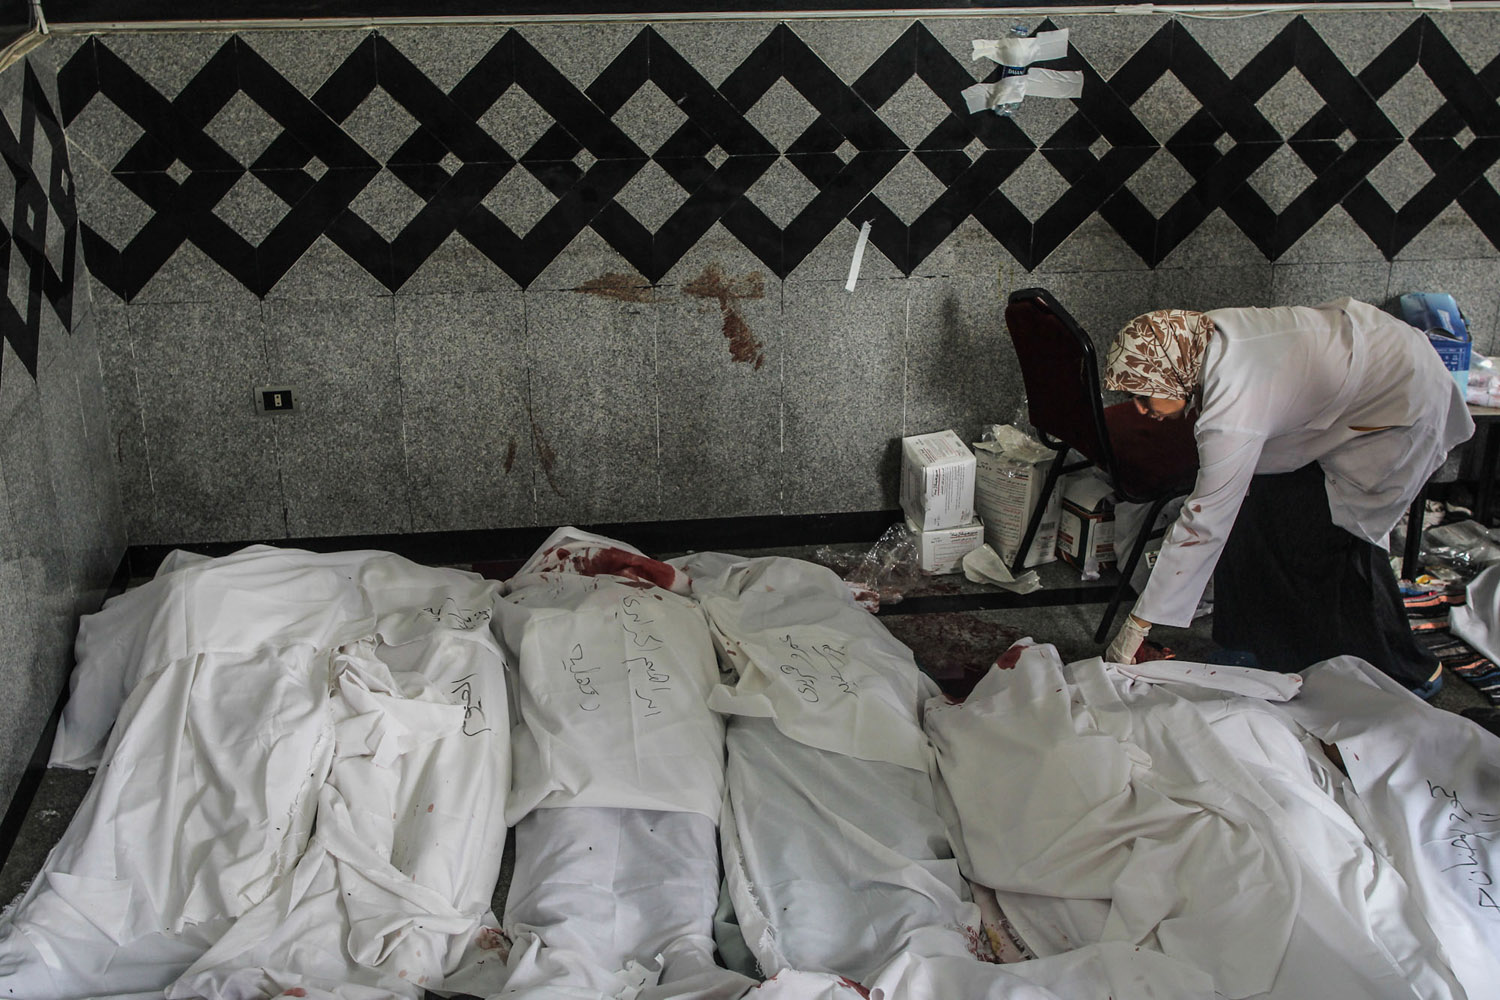 A doctor tries to identify the body of a Morsi supporter killed during the clashes.